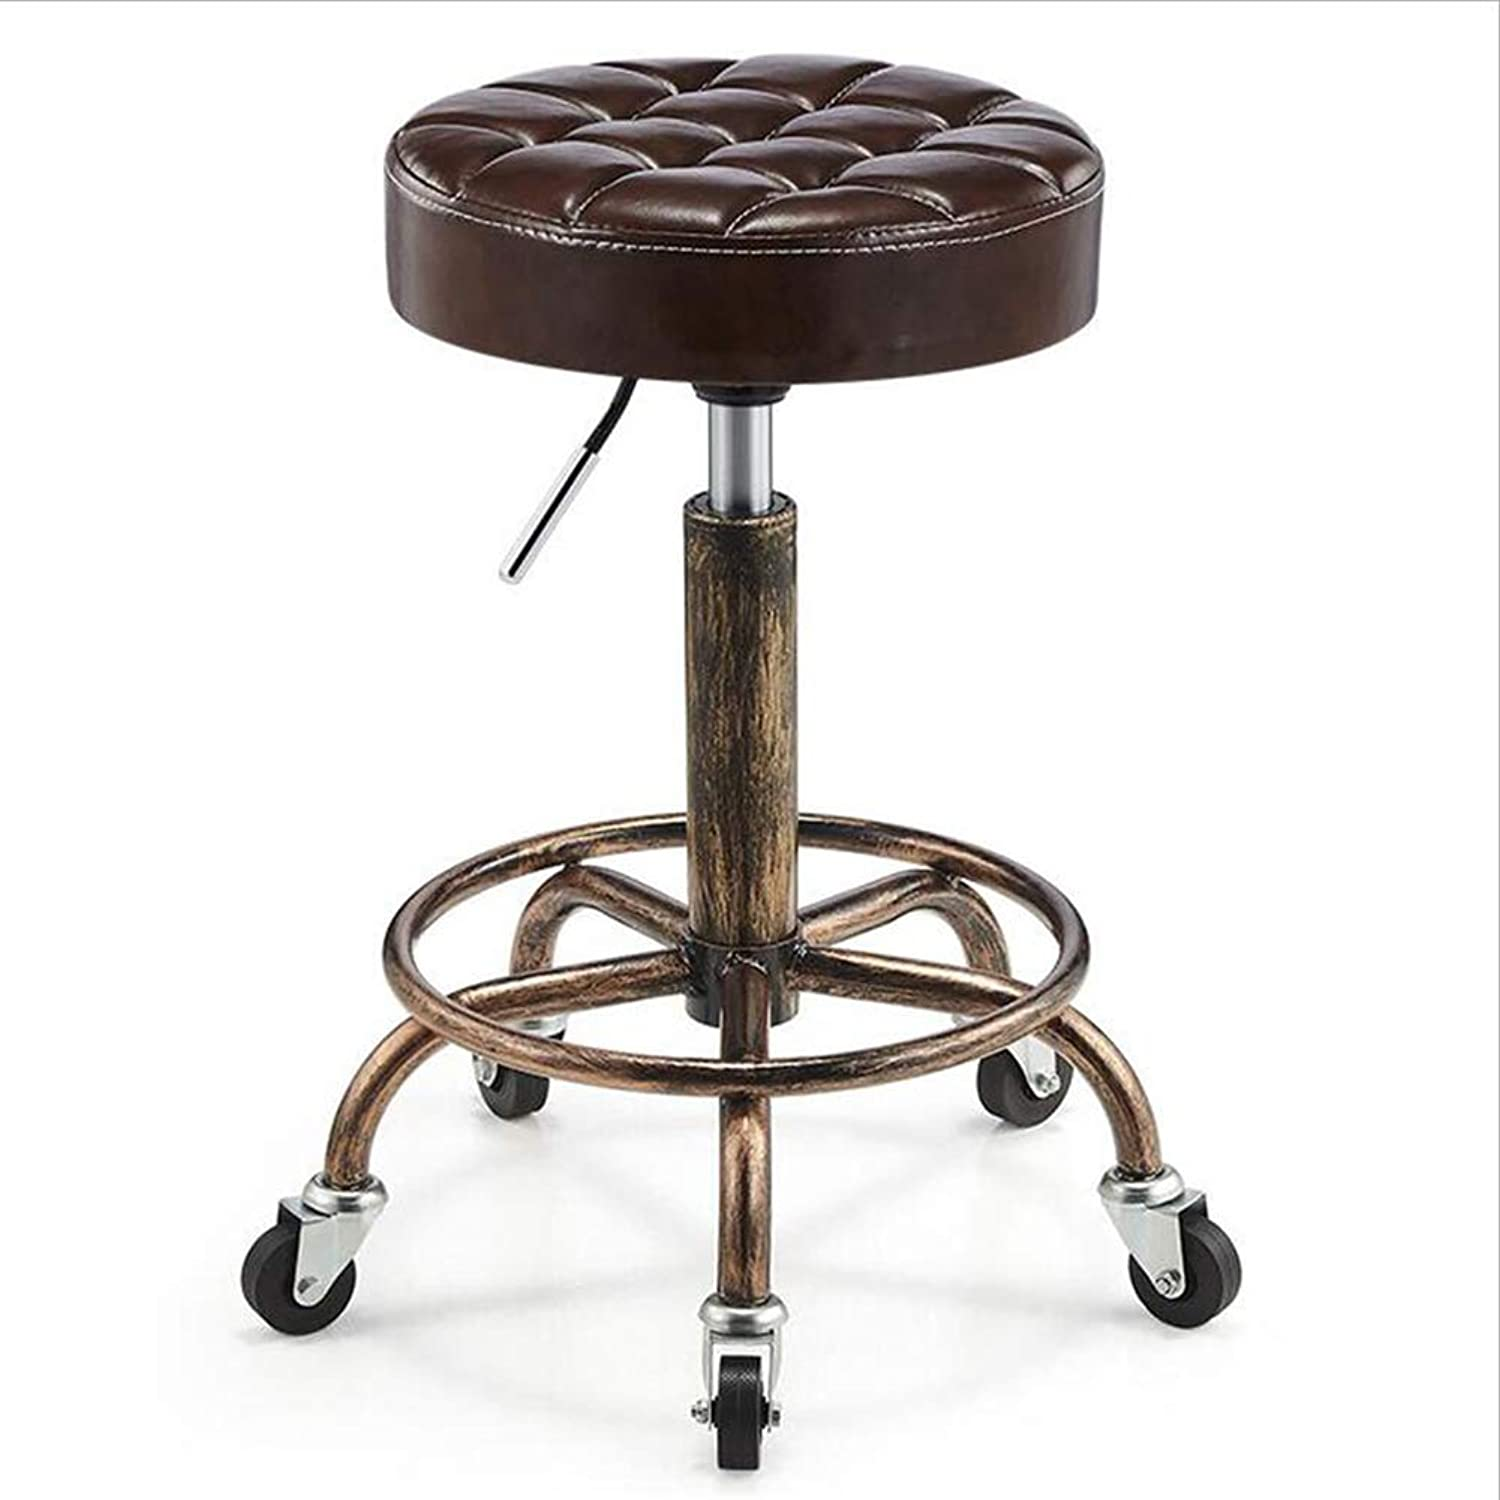 Dining Chairs Seat Chair Pentagonal Pulley Rebar Height Adjustable Lift Make Up Hair Salon Hairdressing Beauty FENPING (color   B-Brown)